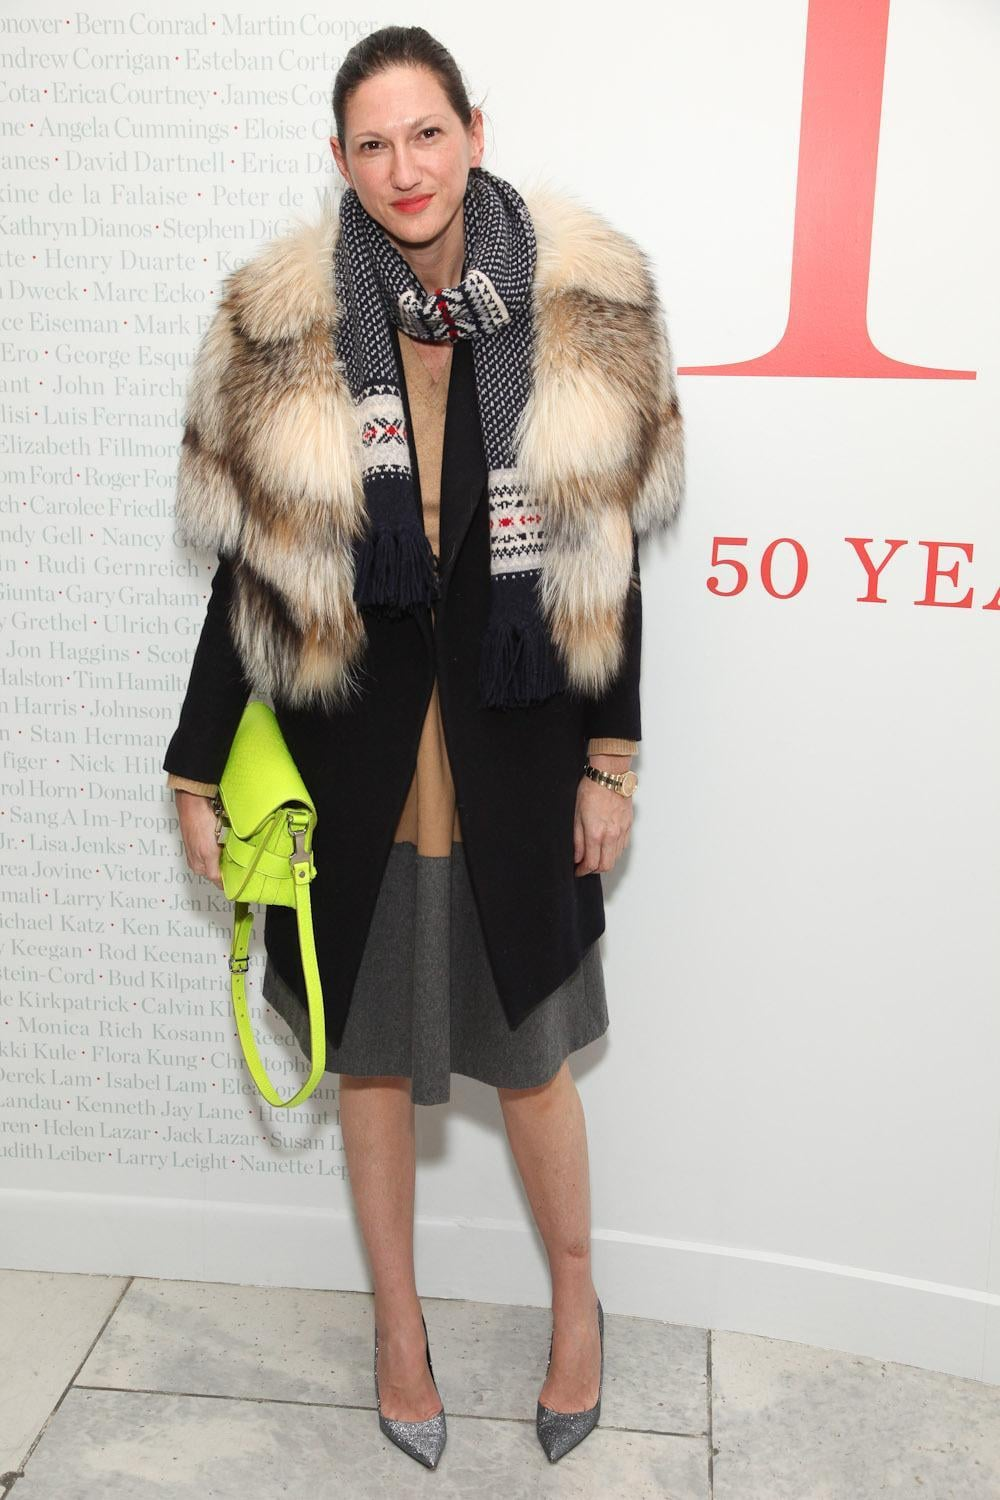 Fur and heels juxtaposed against a neon schoolboy satchel and knit scarf adds up to the sort of intrigue we've come to expect from the J.Crew chief.